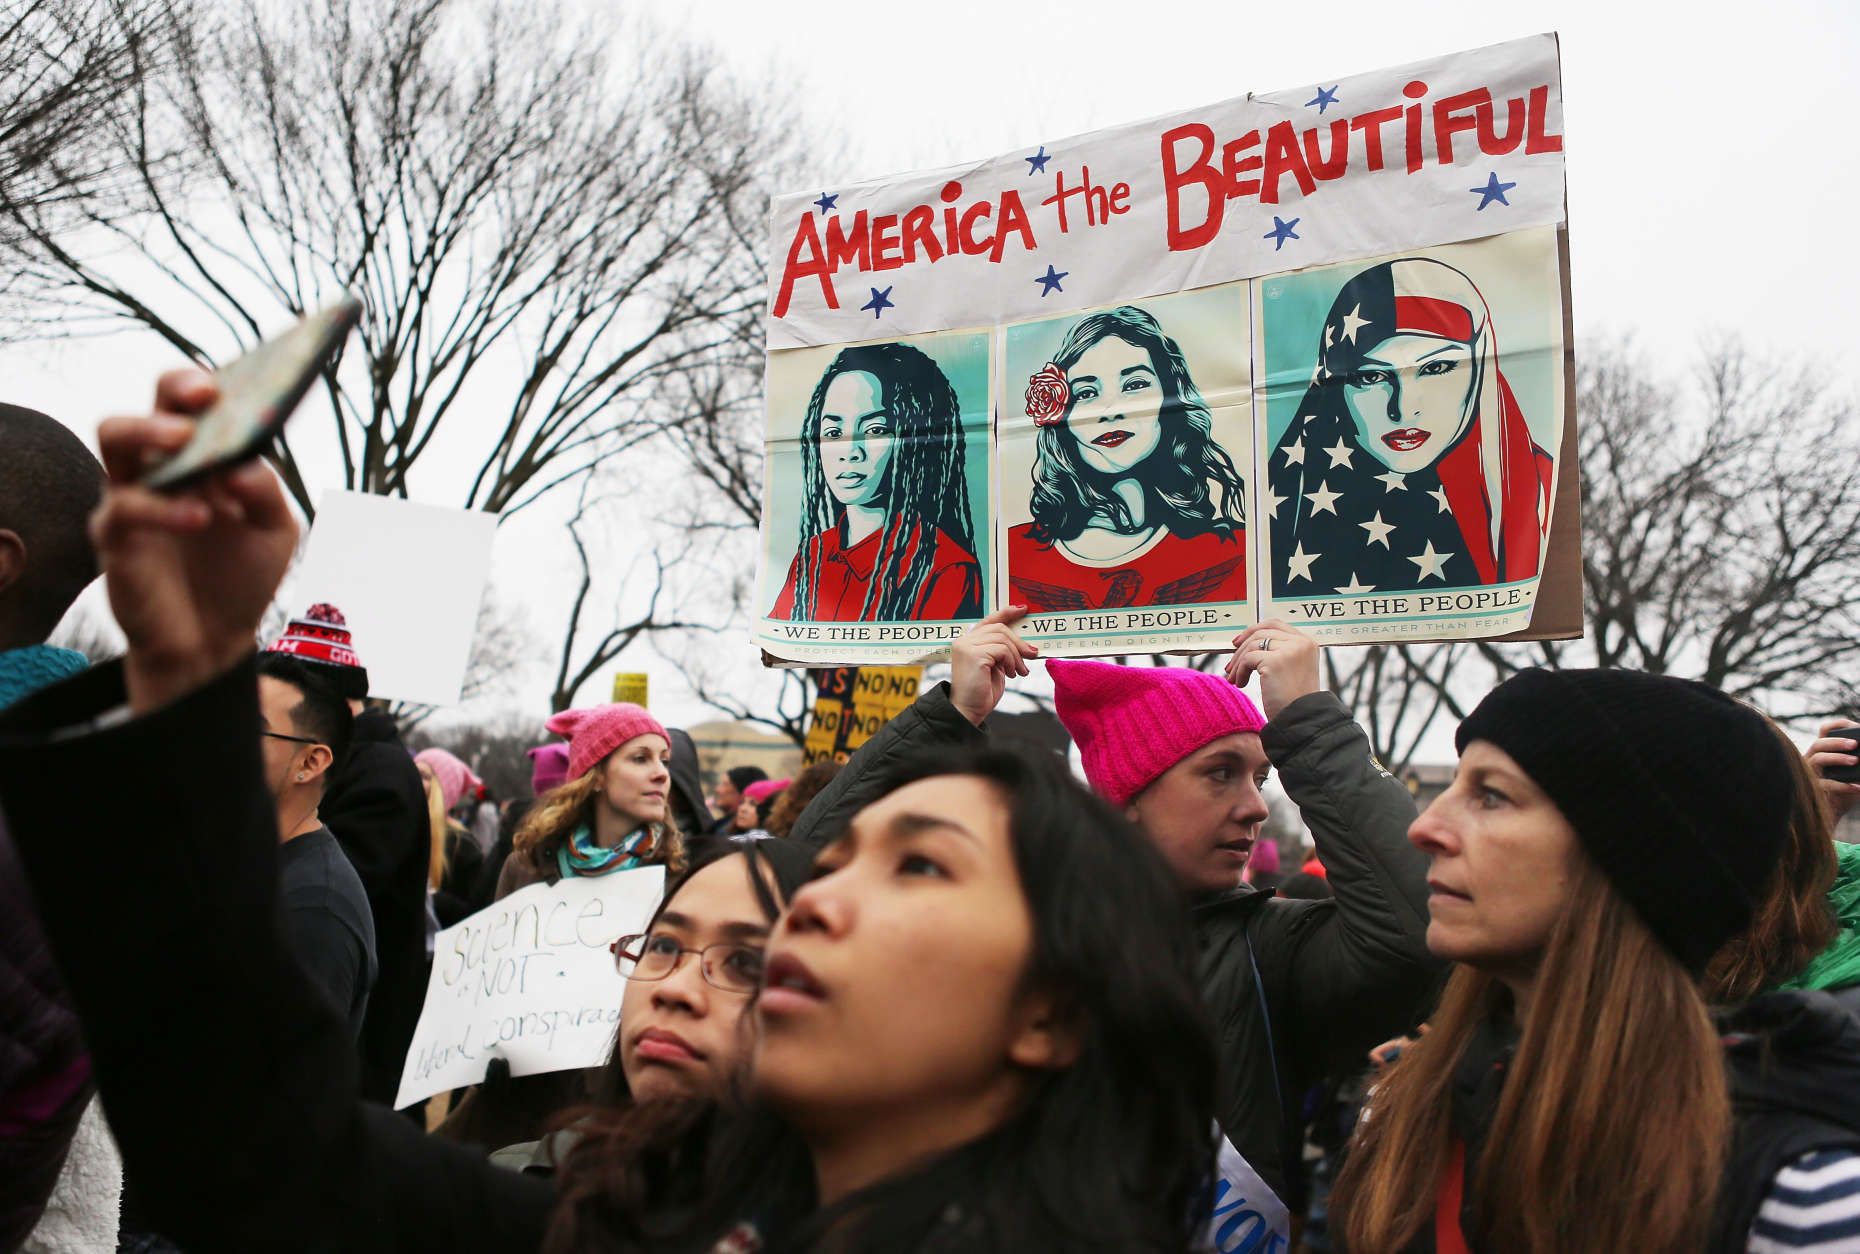 Protesters attend the Women's March on Washington on January 21, 2017 in Washington, DC. Large crowds are attending the anti-Trump rally a day after U.S. President Donald Trump was sworn in as the 45th U.S. president.  (Photo by Mario Tama/Getty Images)